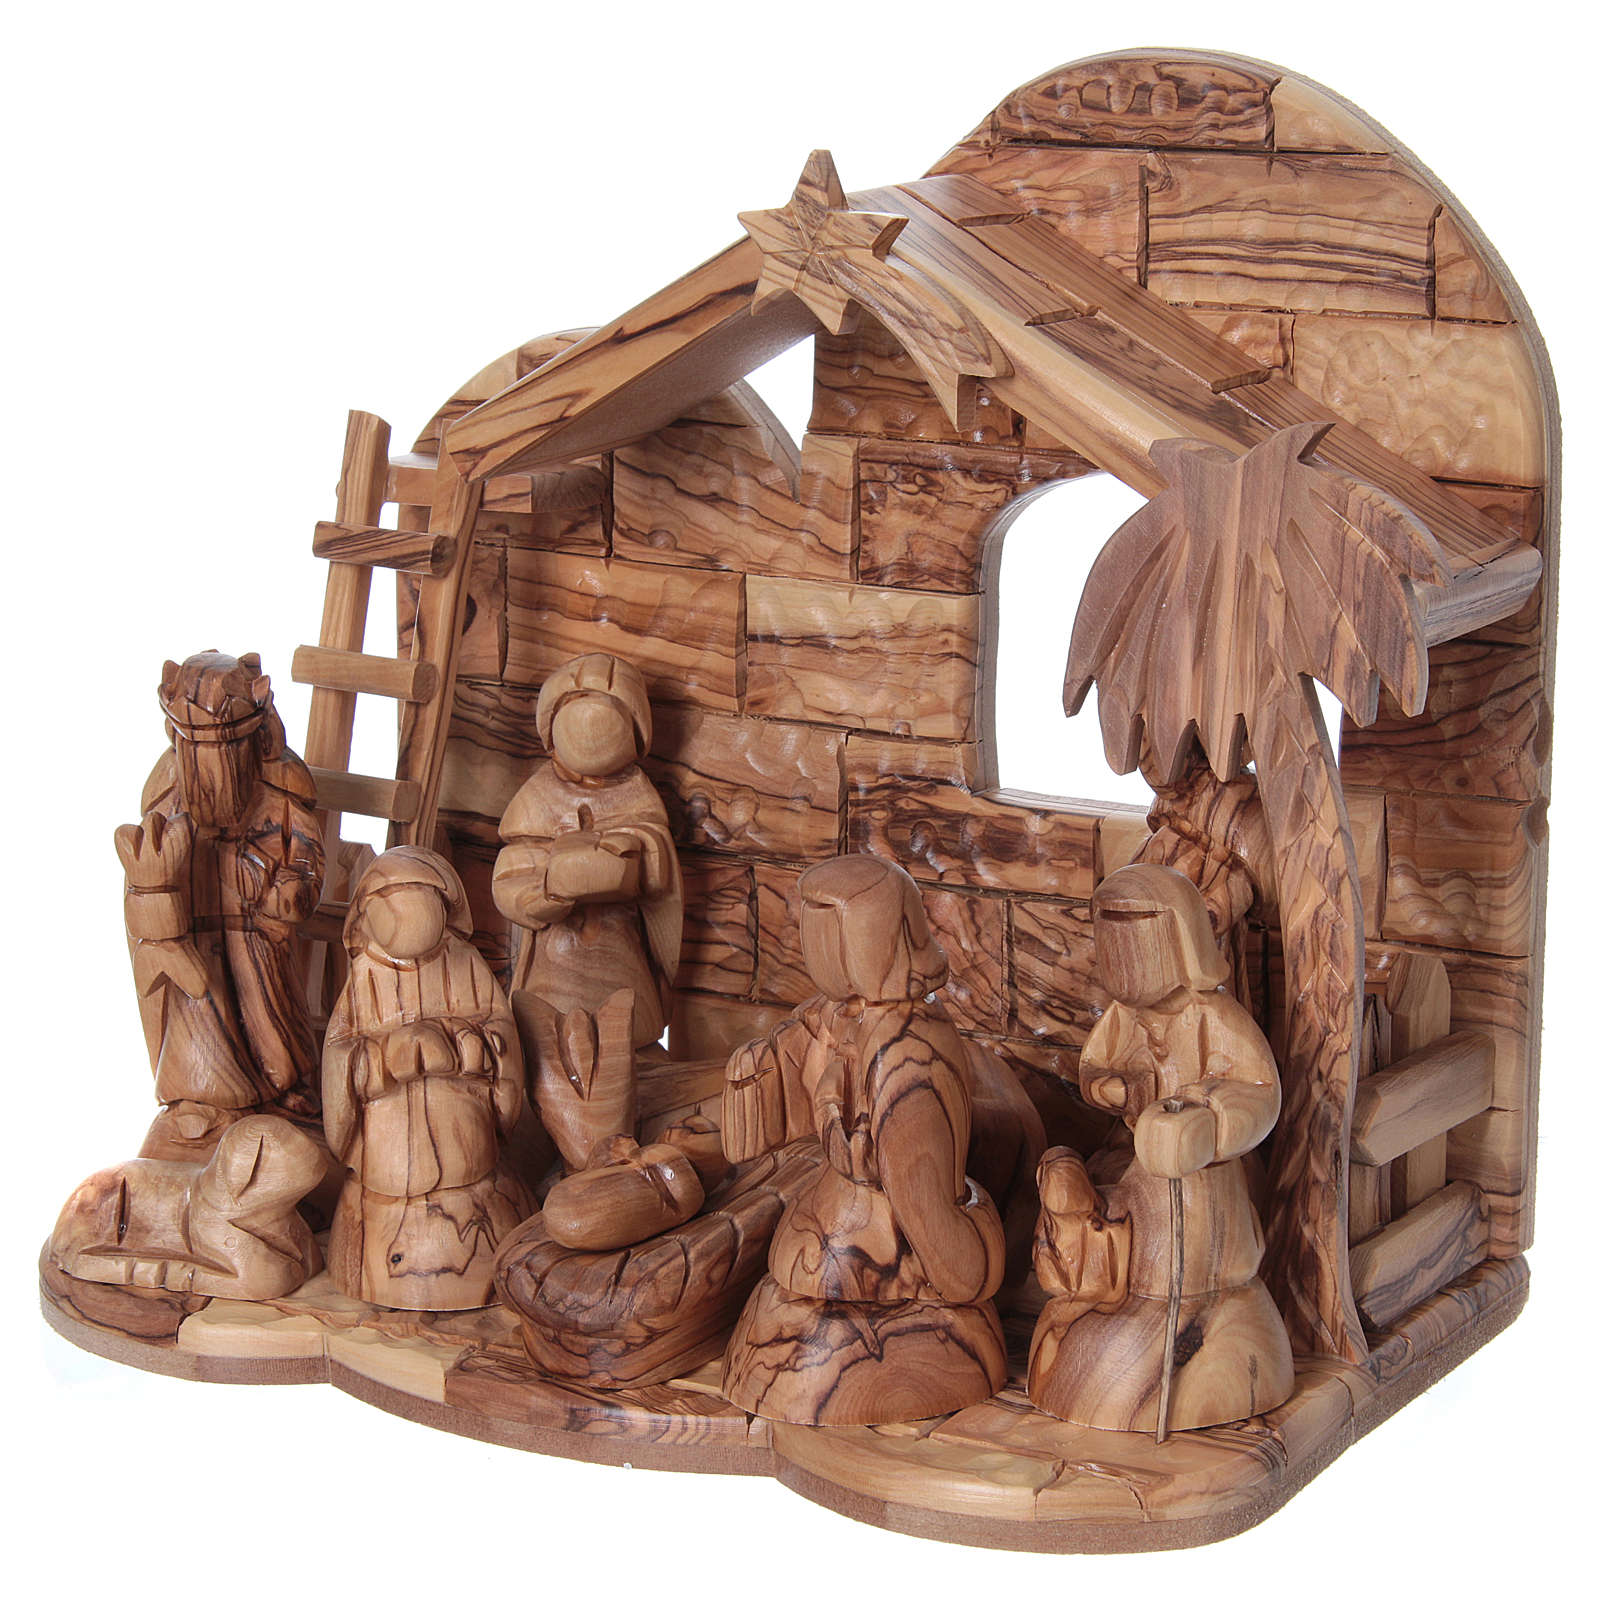 Stylised Olive Wood Nativity Scene from Bethlehem 13 cm with Stable 24.5 x26.5x 16.5 cm 4